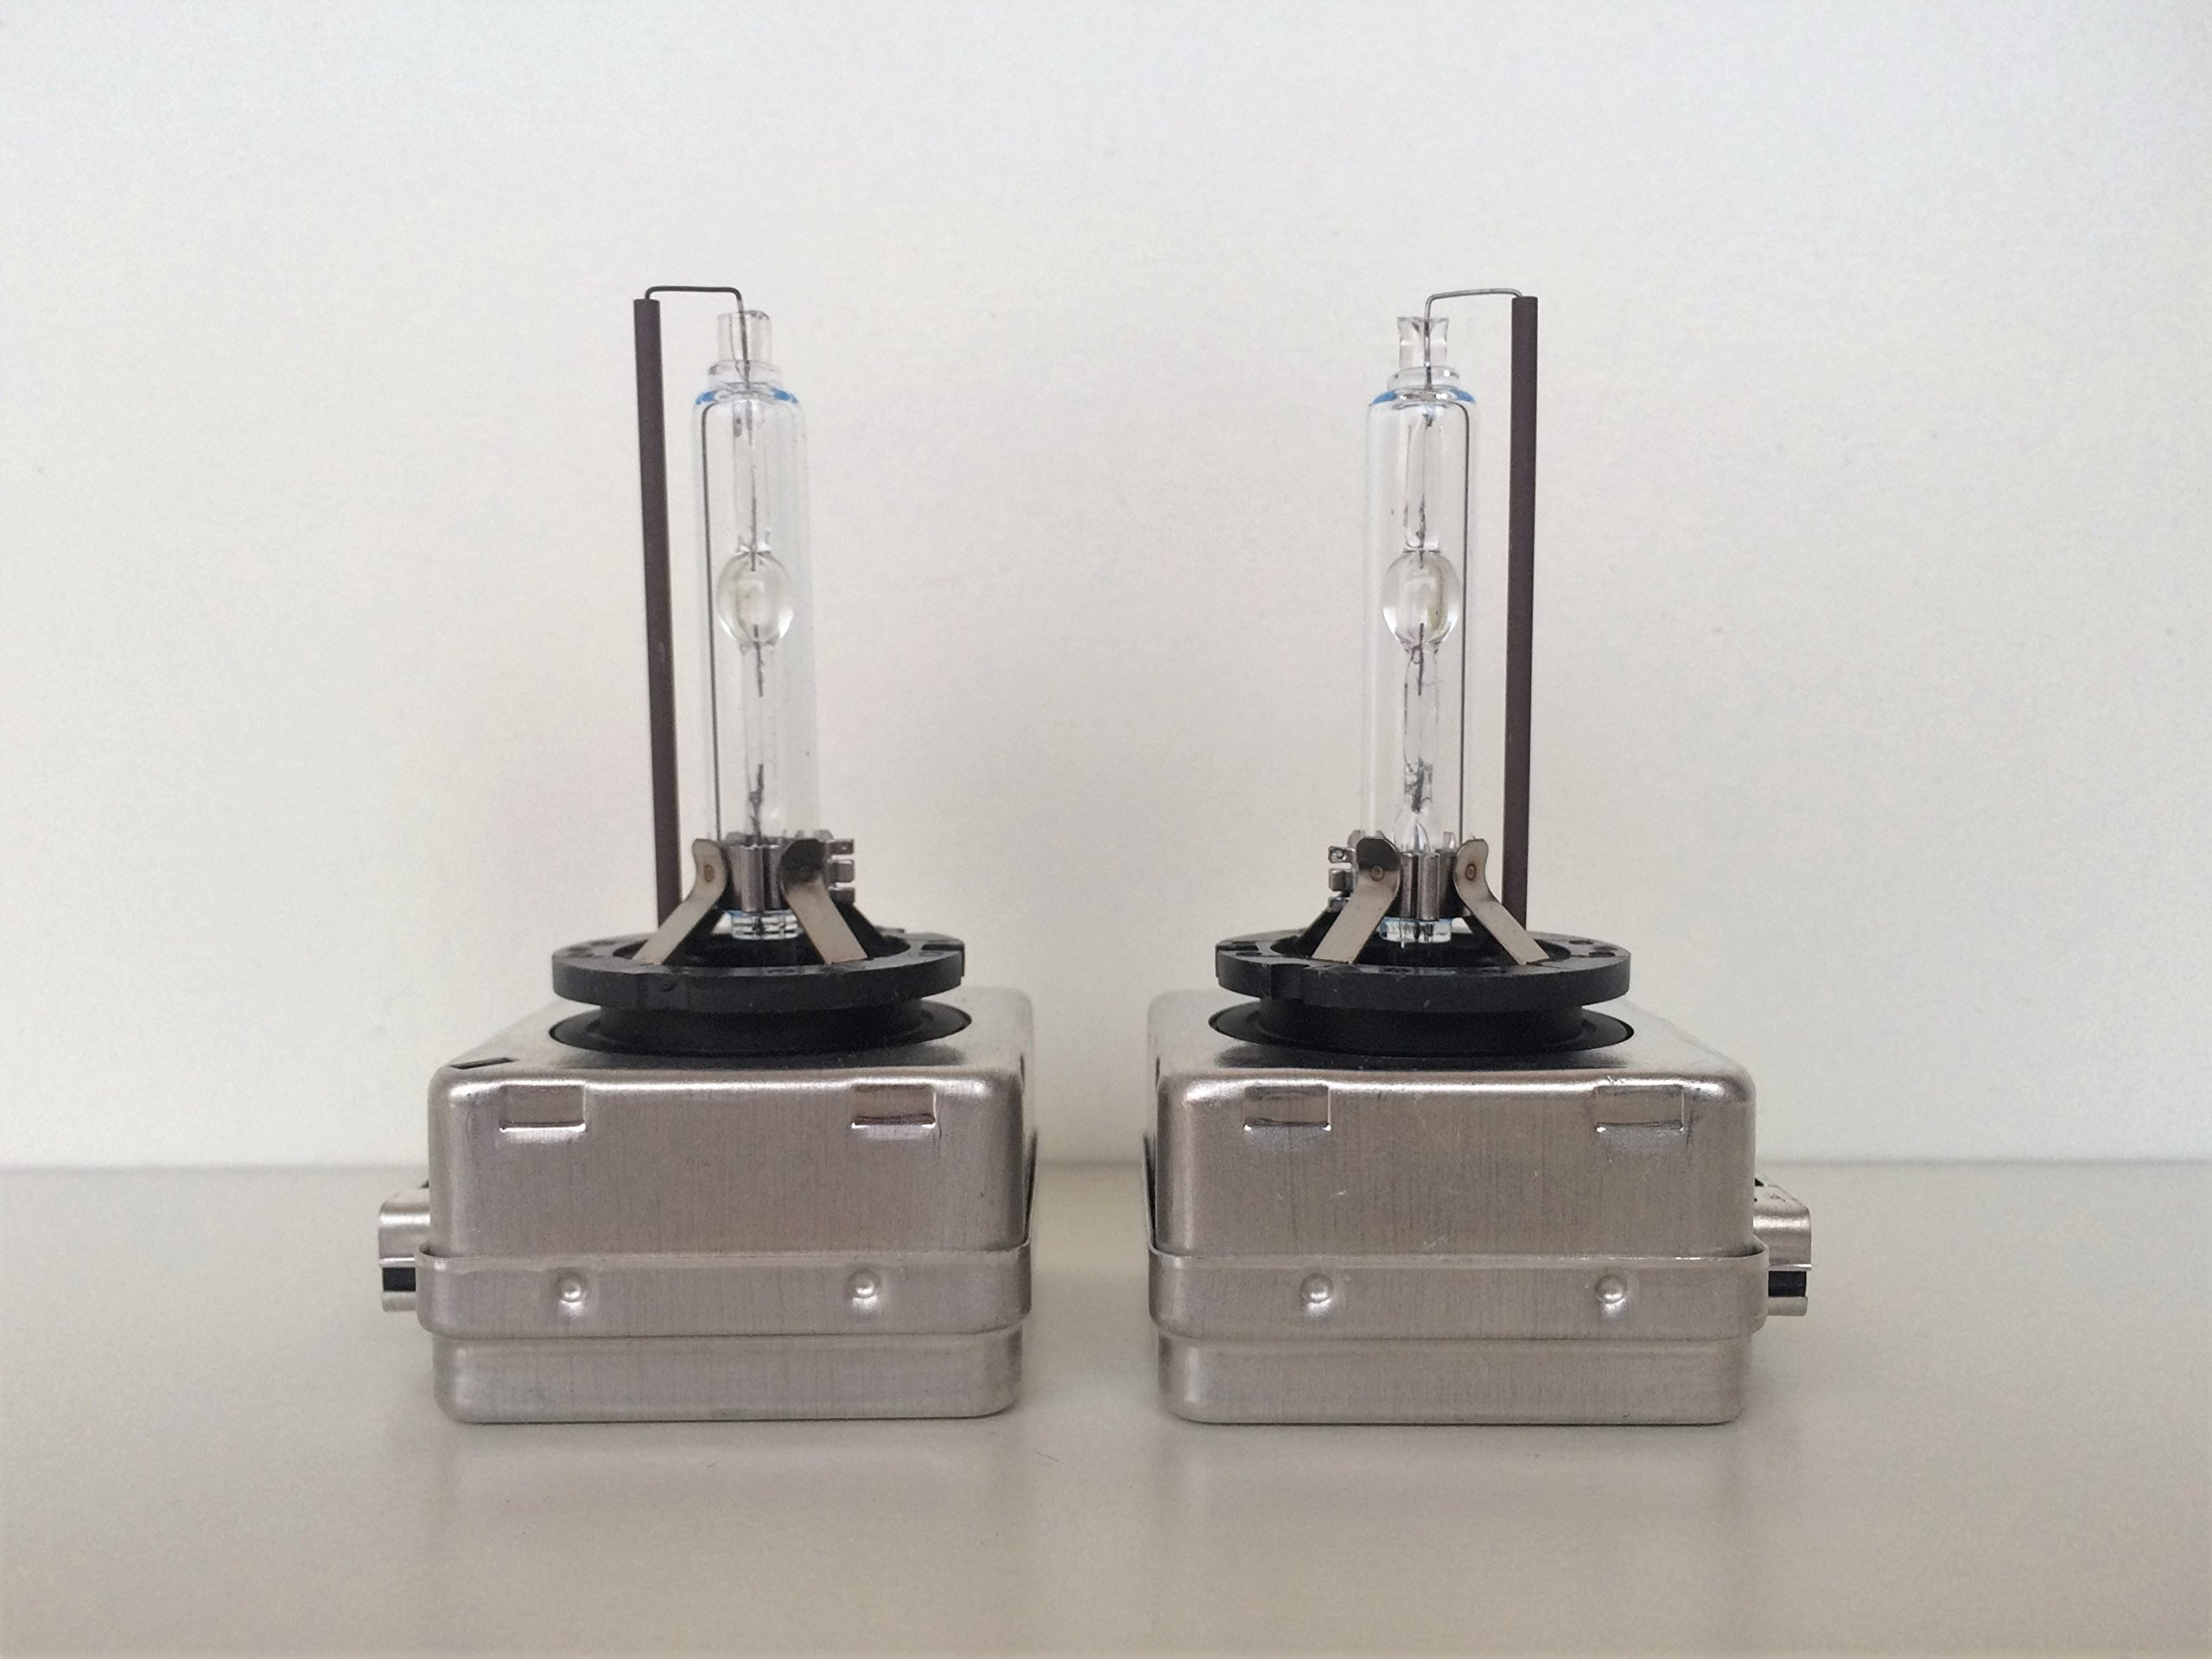 Philips D2S 4300K OEM Replacement HID Xenon Bulbs 85122 35W DOT Germany Pack of 2 by ALI